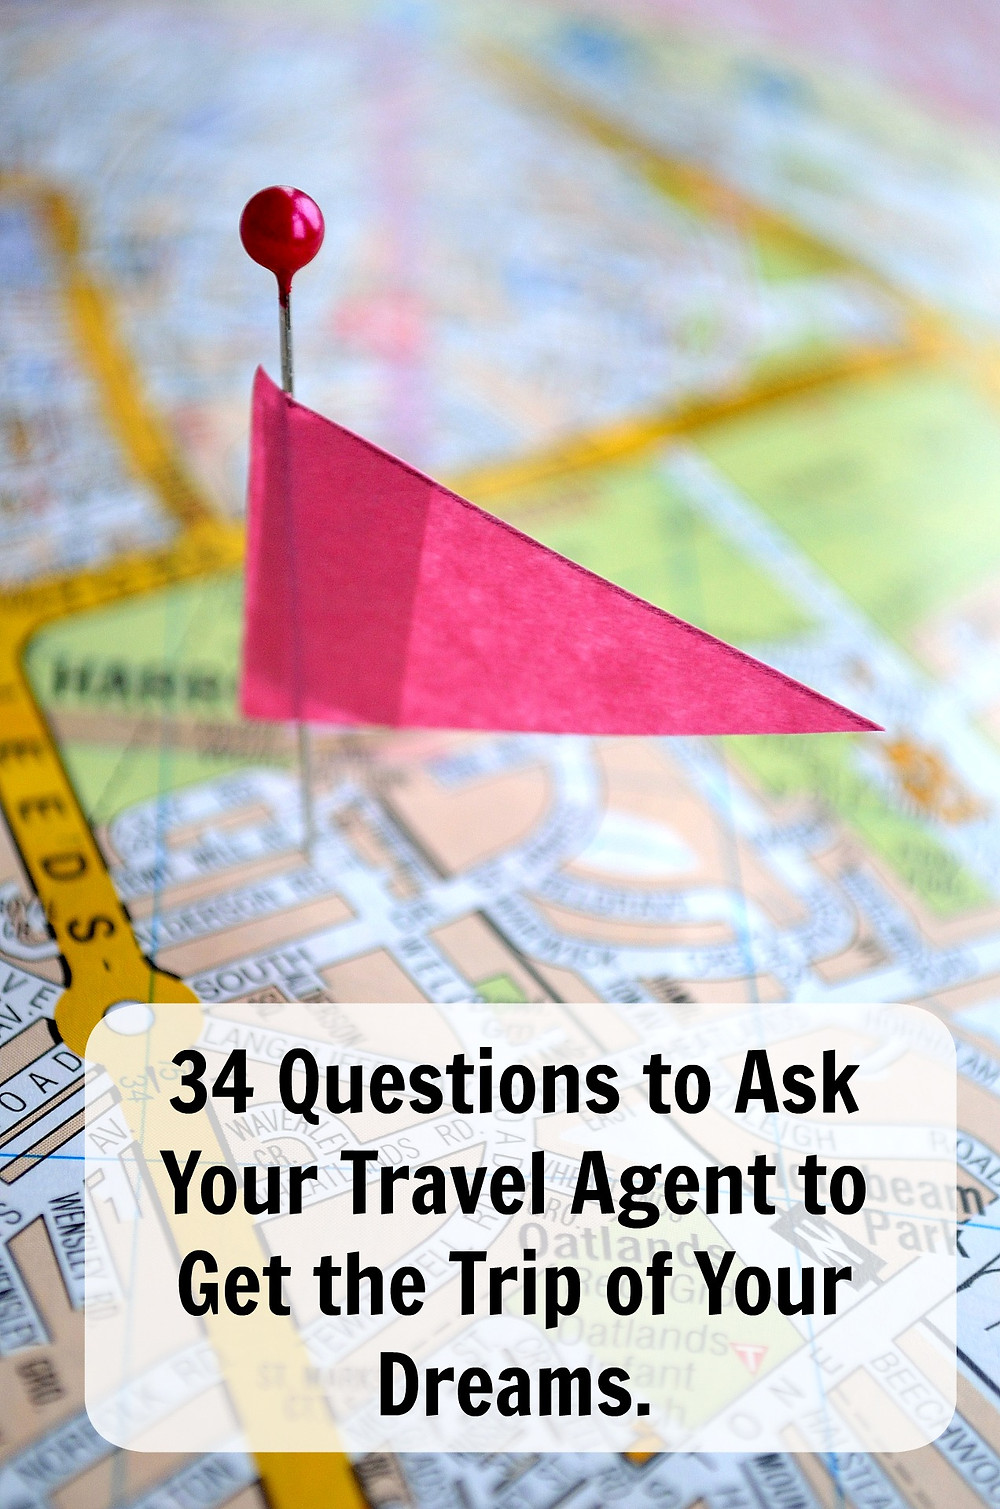 34 questions to ask your travel agent